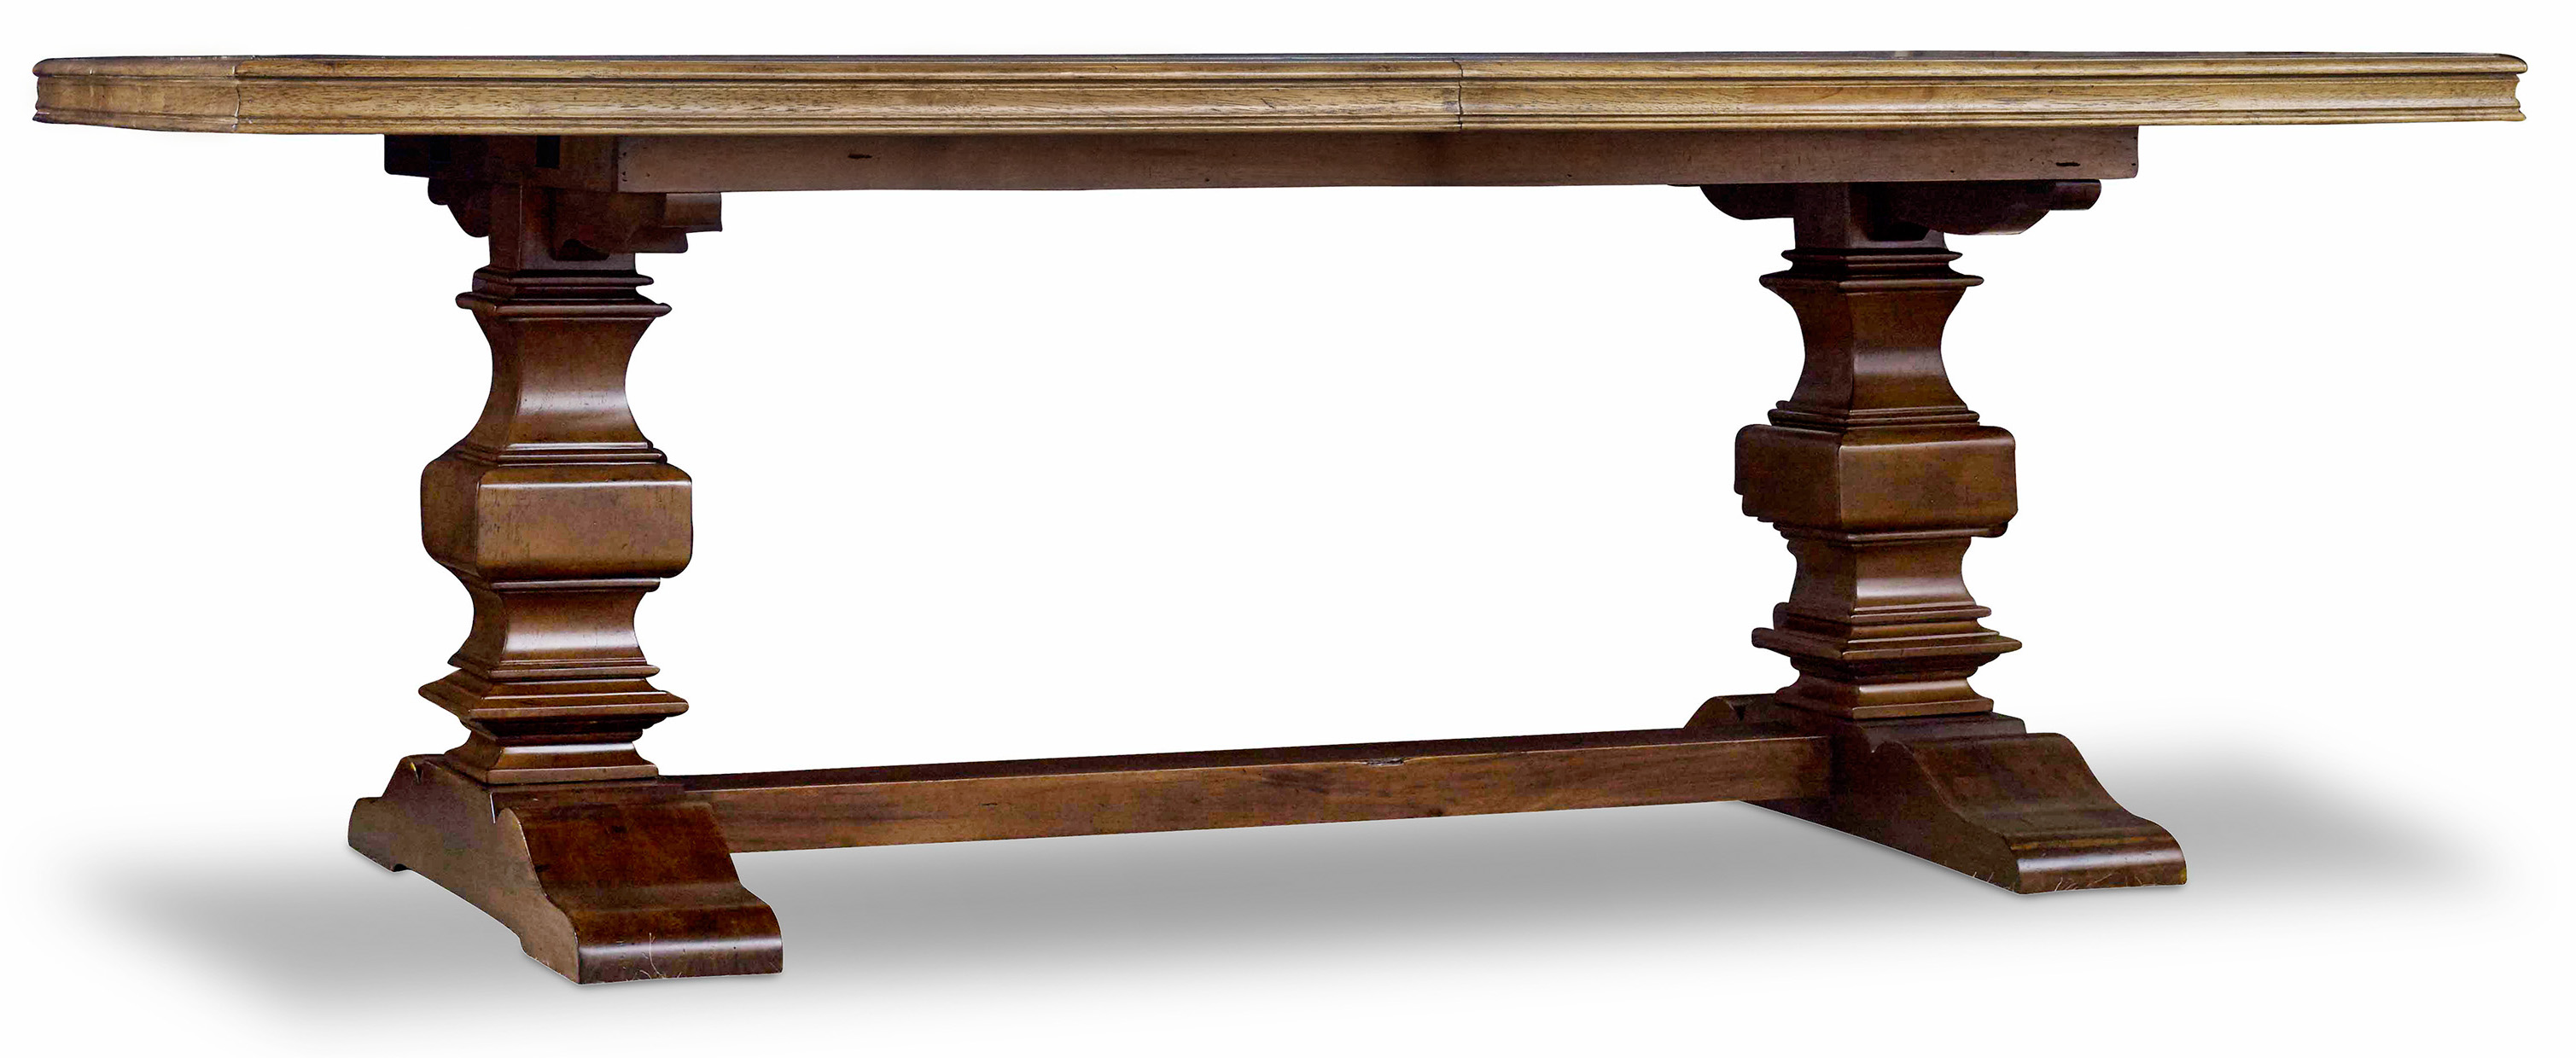 Hooker Furniture Archivist Trestle Table - Item Number: 5447-75206-TOFFEE